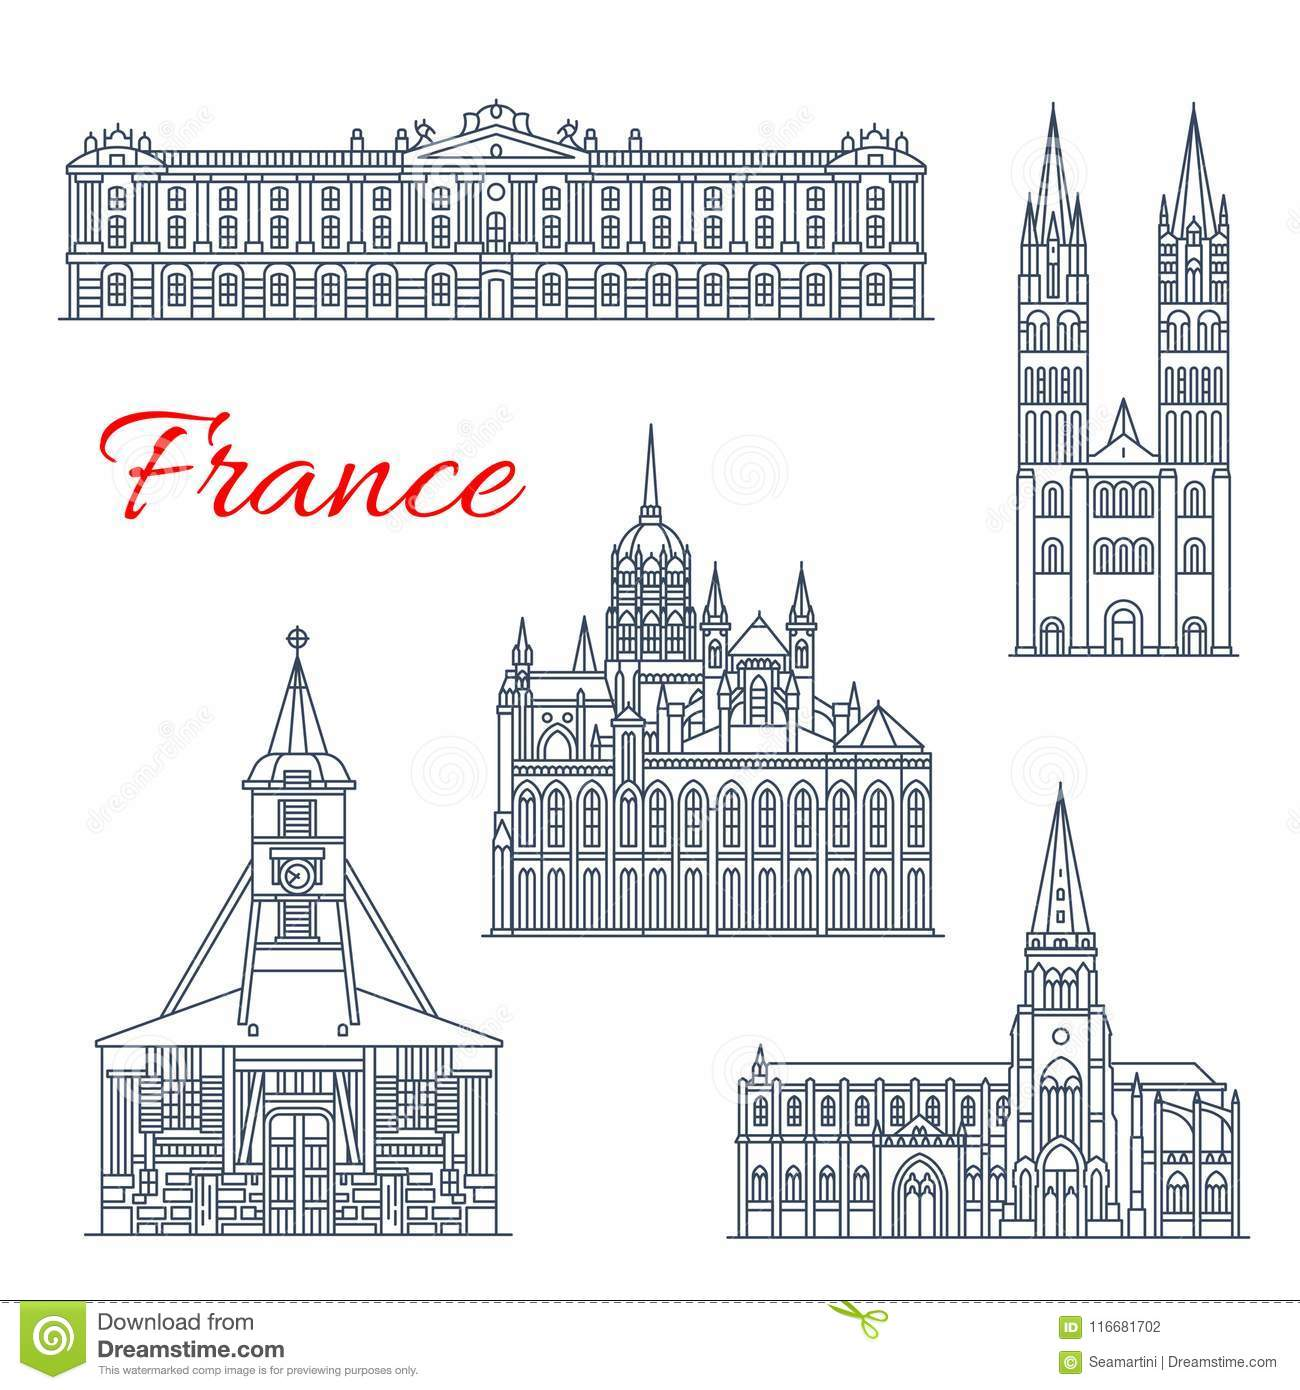 St Etienne Design Travel Landmark Of France Thin Line Icon Design Stock Vector